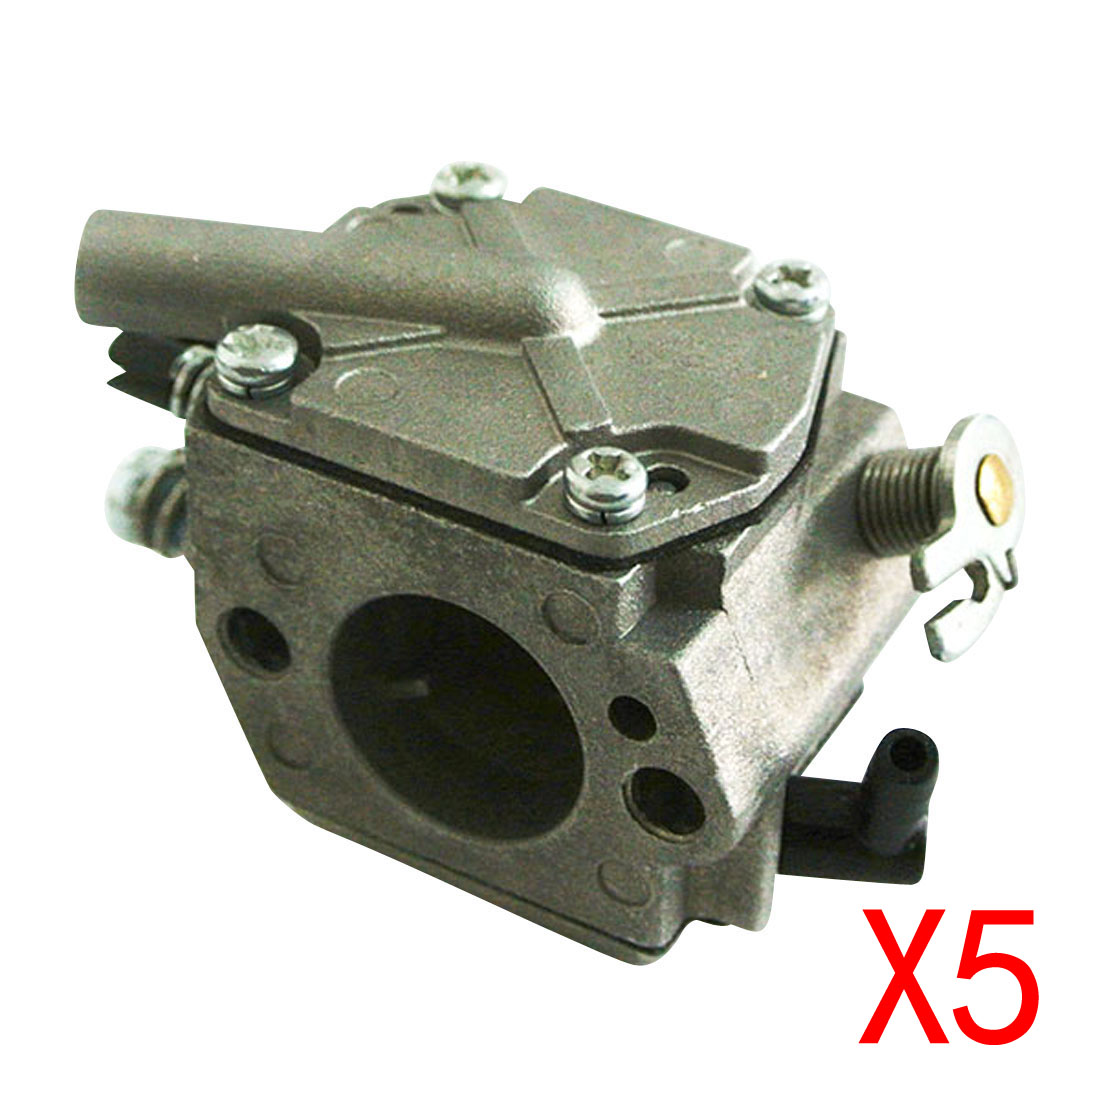 5pcs Carburetor Carb For STIHL Chainsaw 038 MS380 MS381 Engine Carb carburetor forrenault glt 11779001 carb